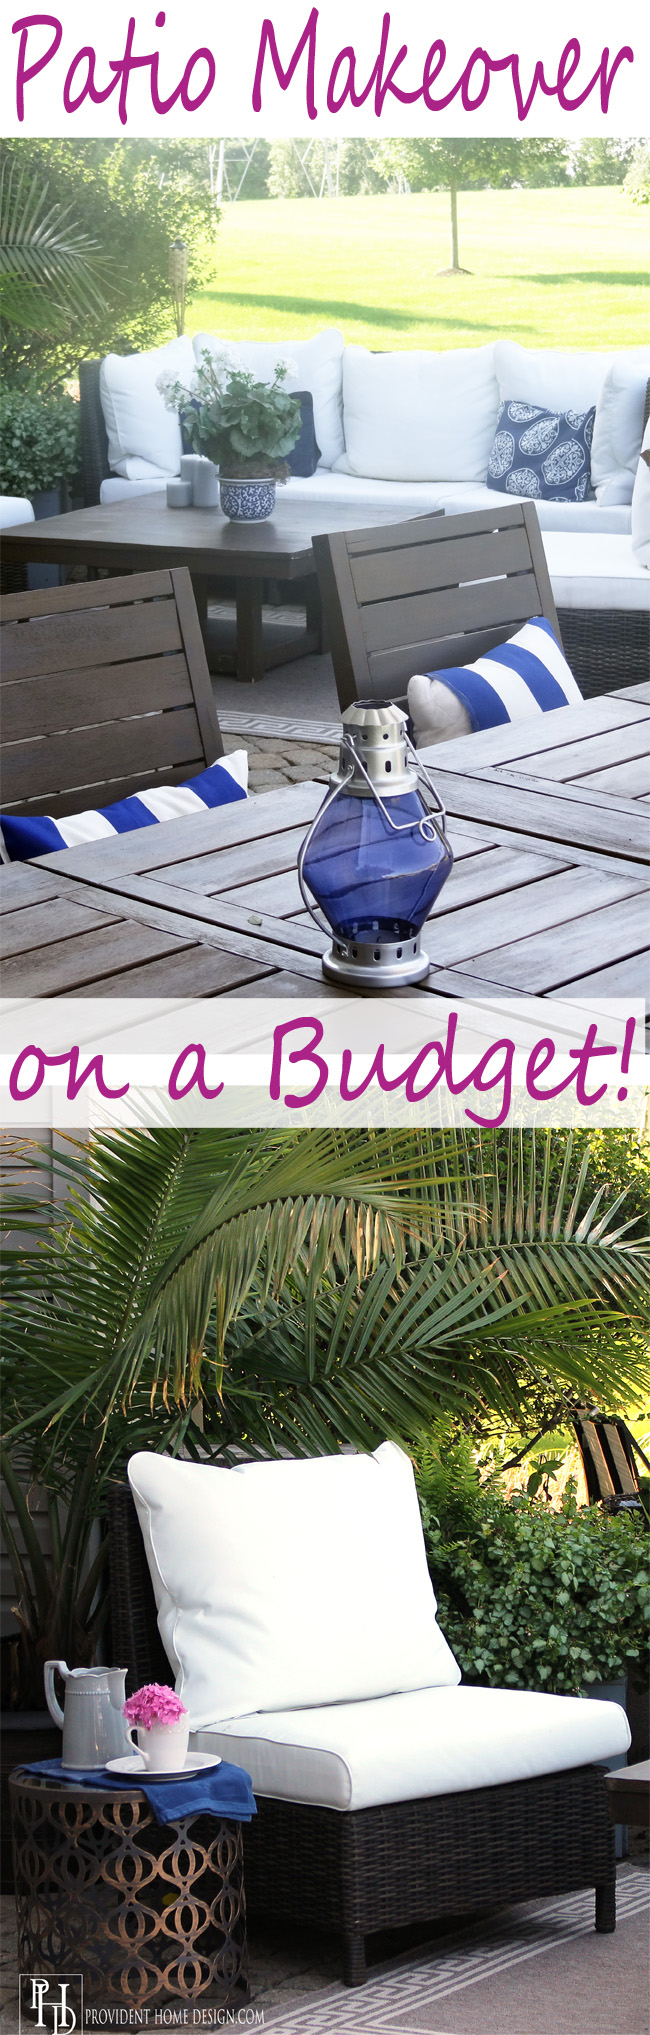 Budget Patio Makeover Ideas on Patio Makeovers On A Budget id=84910